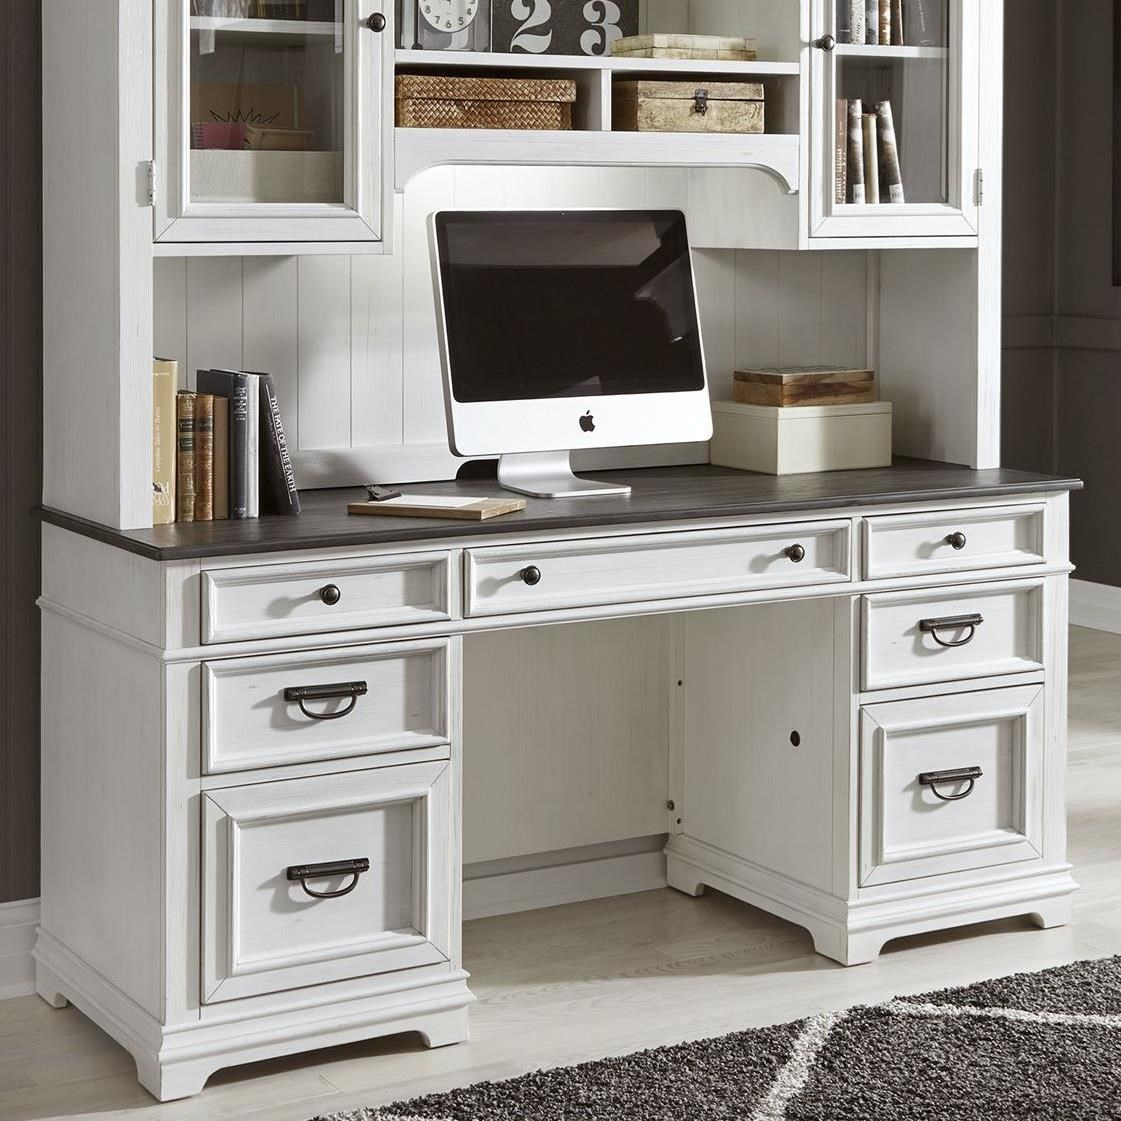 Allyson Park Credenza by Liberty Furniture at Catalog Outlet